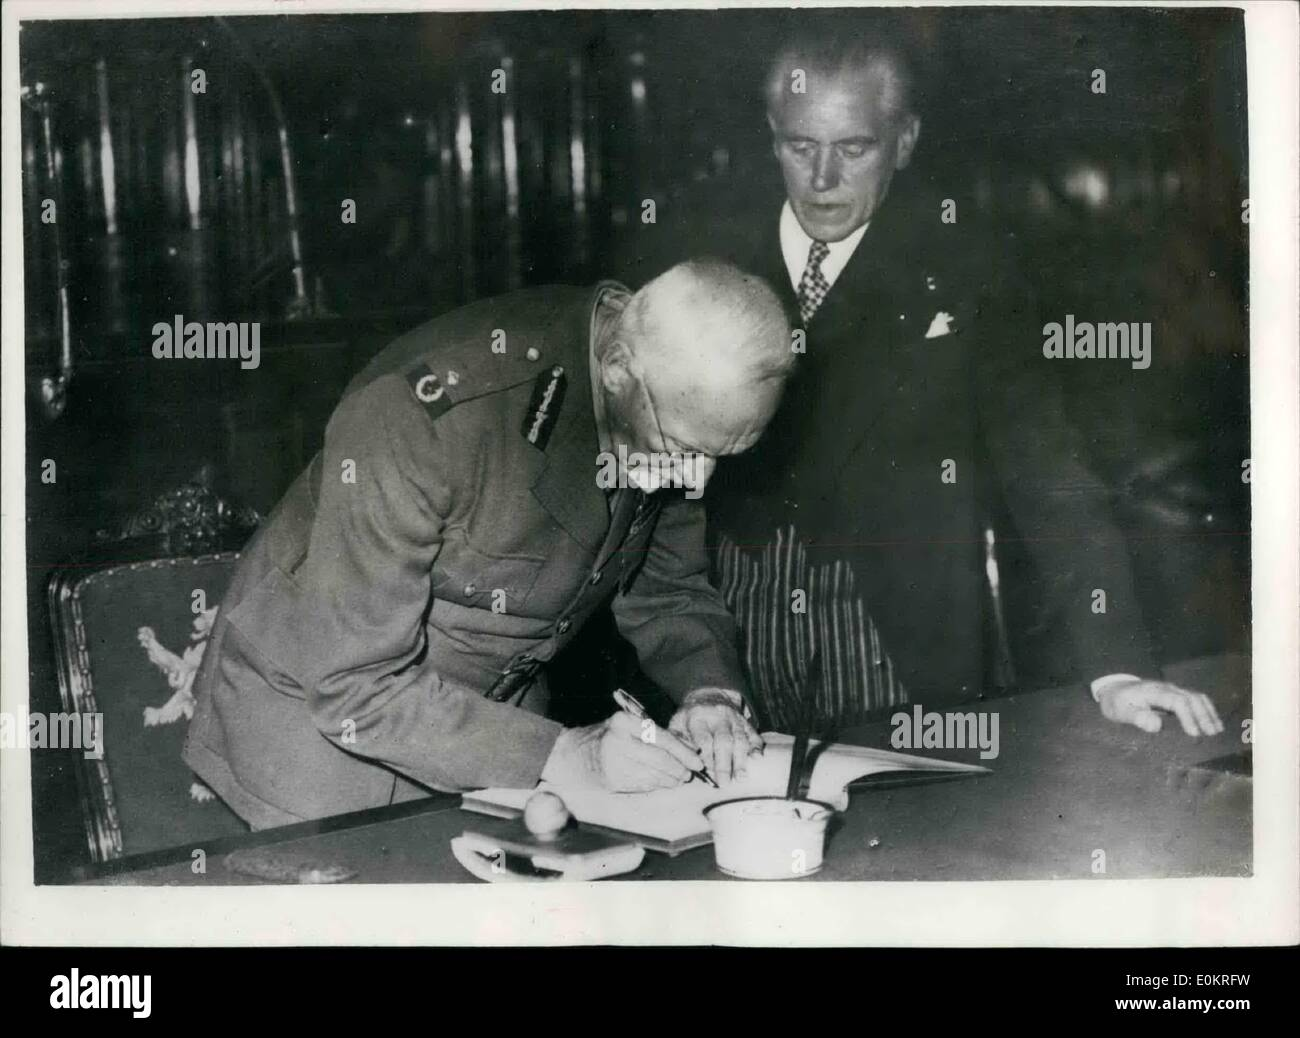 Oct. 10, 1946 - Field Marshal Smuts As Guest Of Belgian State: Phot Shows Field Marshal Smuts sigging the Golden Book recently, - Stock Image